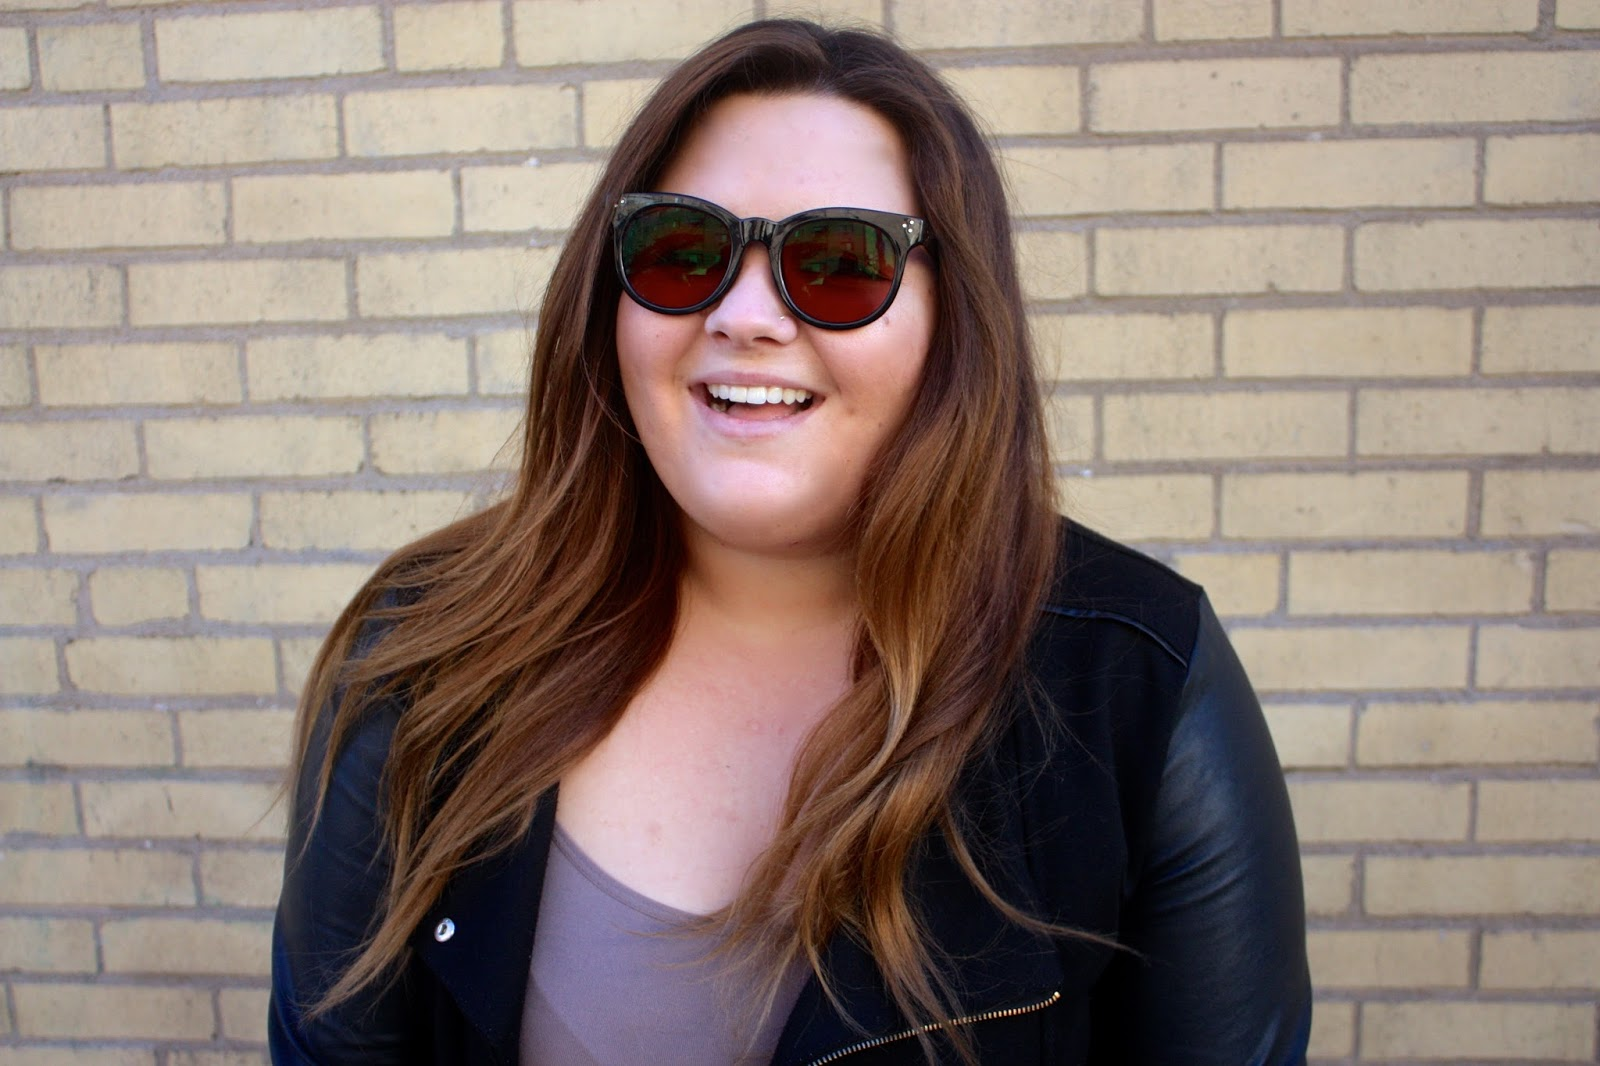 Natalie Craig, natalie in the city, chicago, chicago fashion blogger, plus size fashion blogger, sunglasses for fall, chic, cat eye, wayfarer, ray bans, plus size, firmoo, online glasses retailer, ombre hair, fatshion, happy, brown sunglass lenses, sunnies, shades, aviators